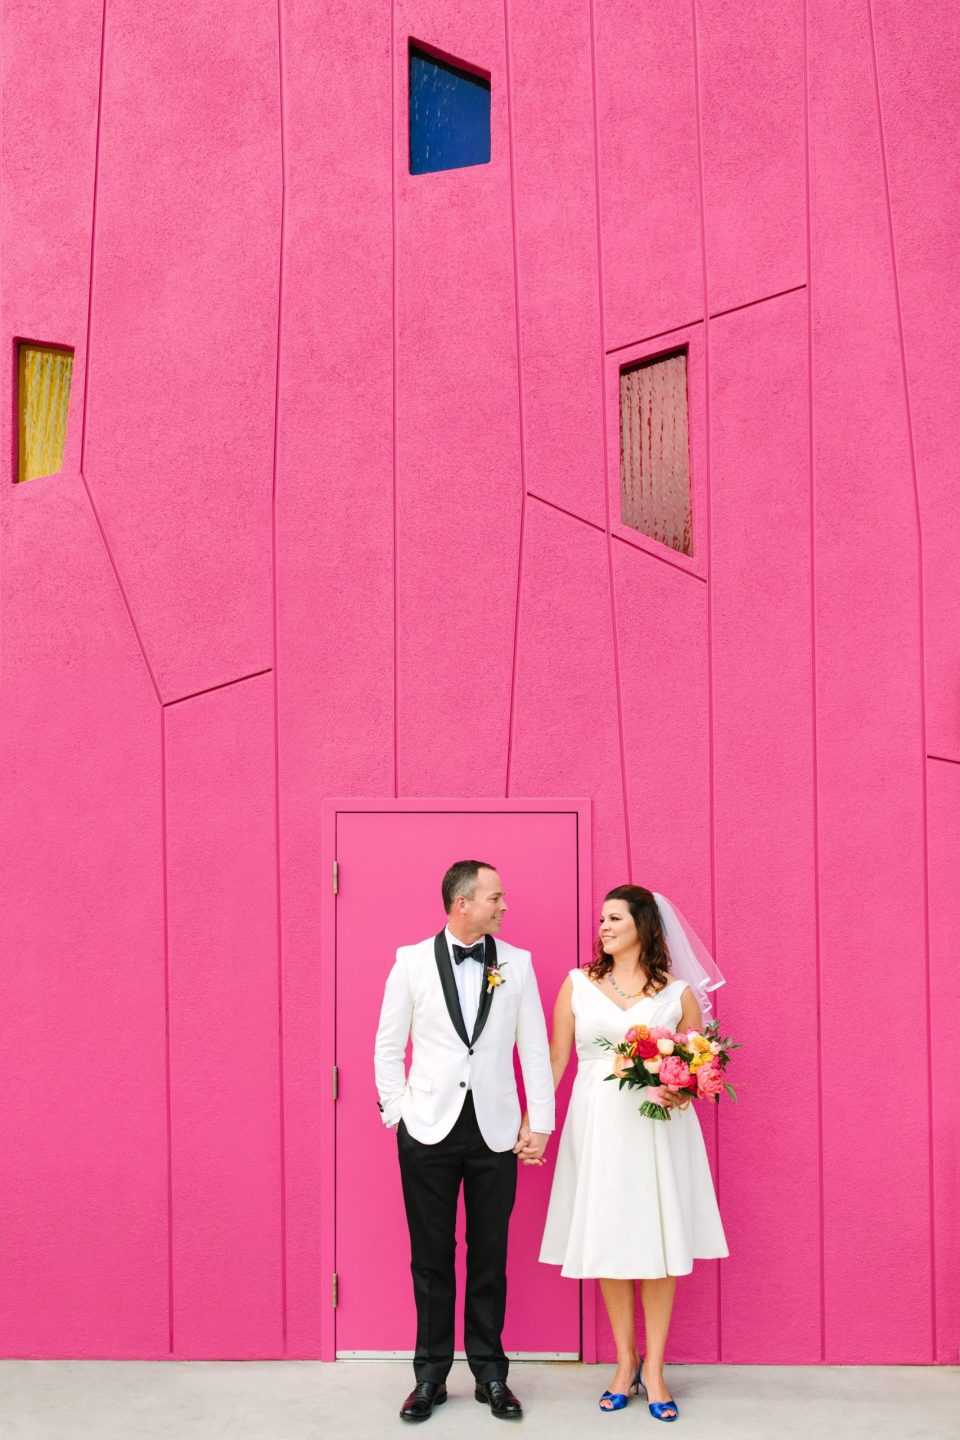 Bride and groom in front of pink wall at Saguaro Palm Springs www.marycostaweddings.com